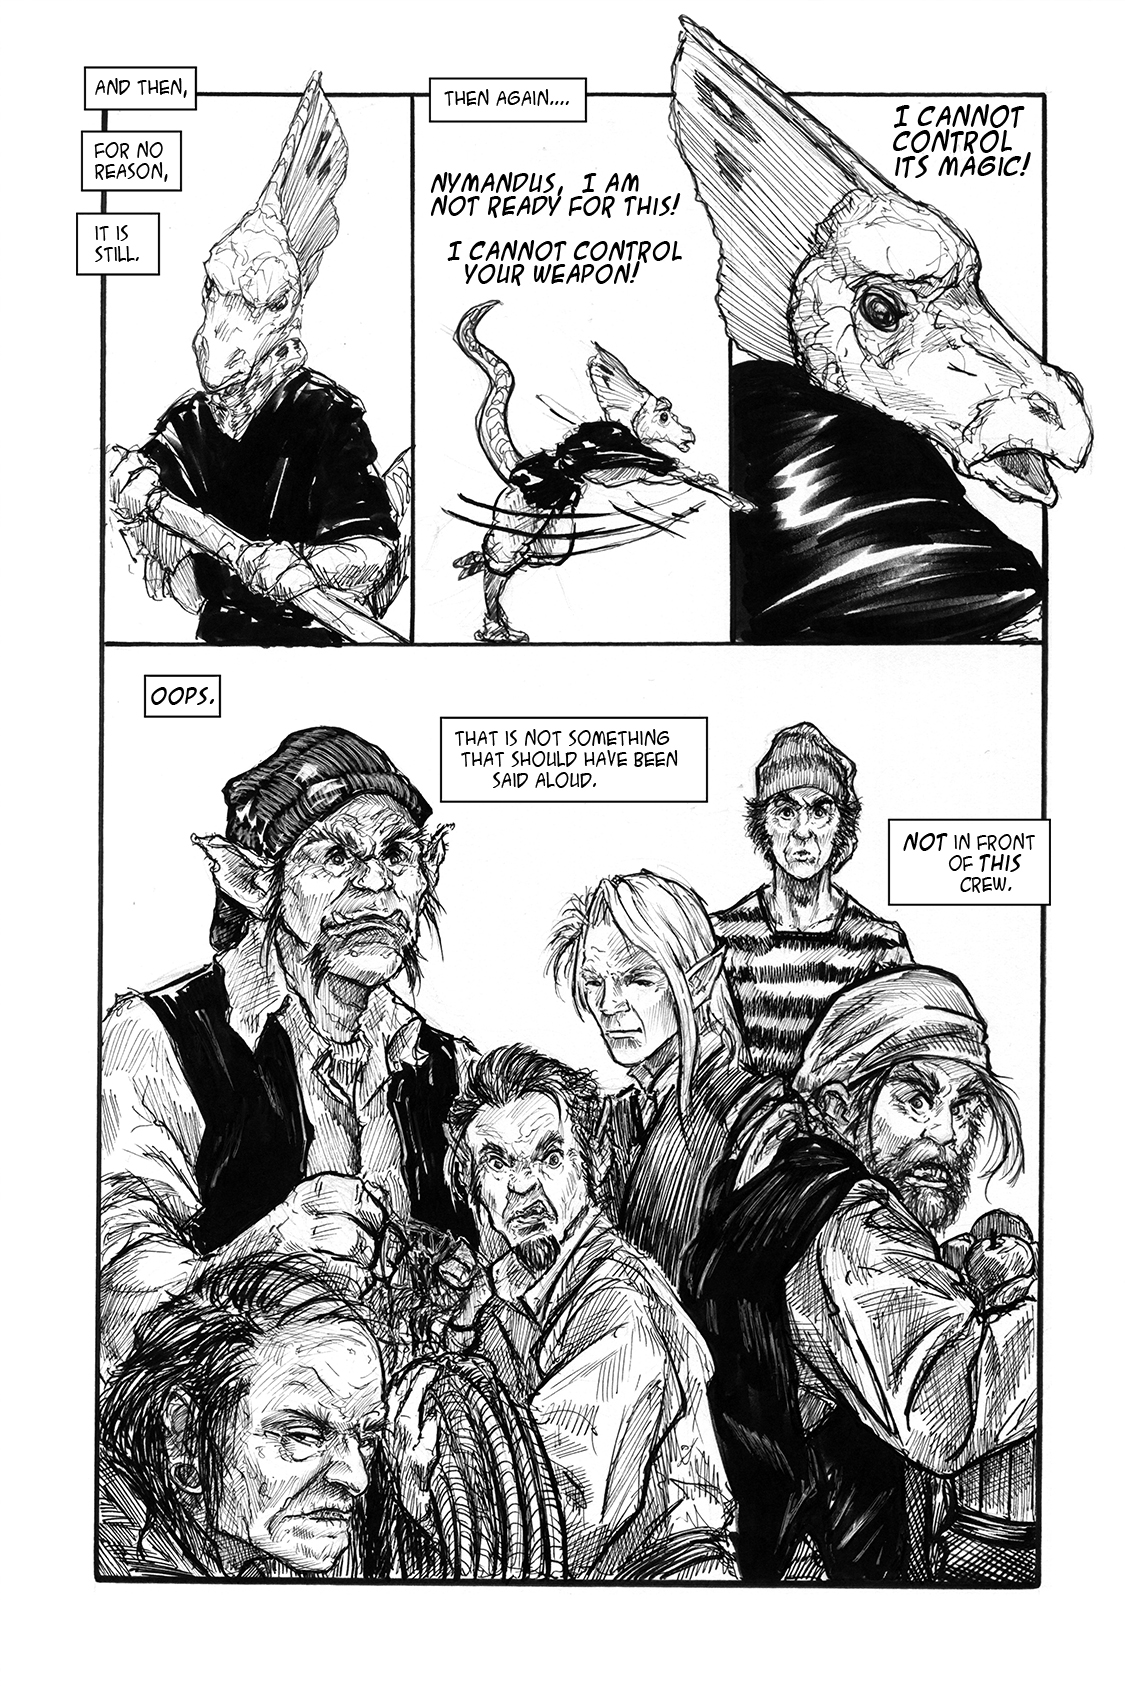 Champions Challenge Pg 112 by Don Higgins